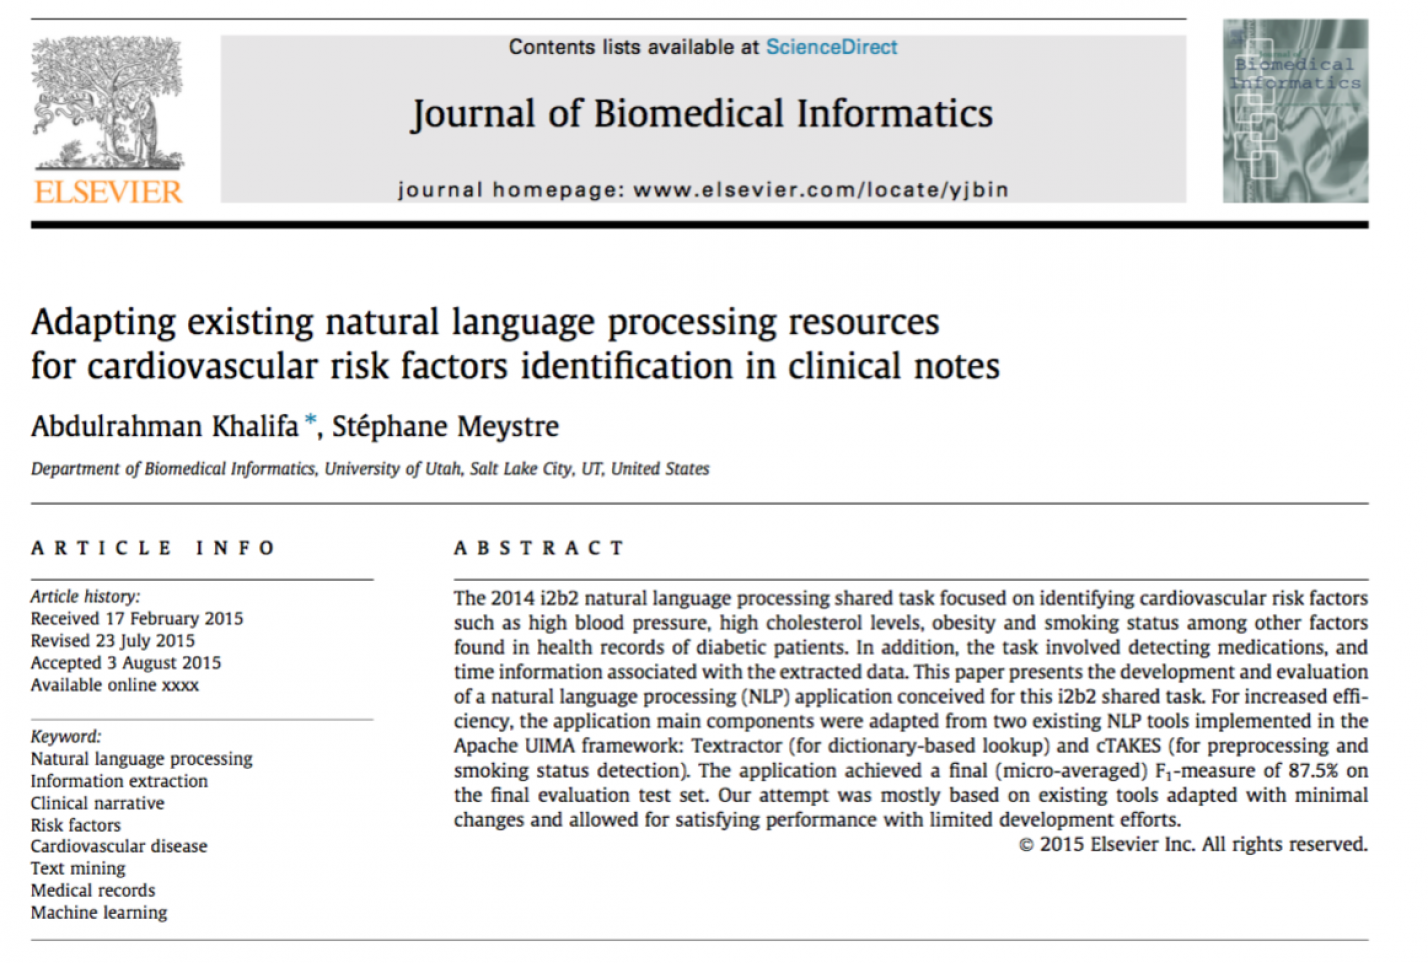 Adapting Existing Natural Language Processing Resources for Cardiovascular Risk Factors Identification in Clinical Notes